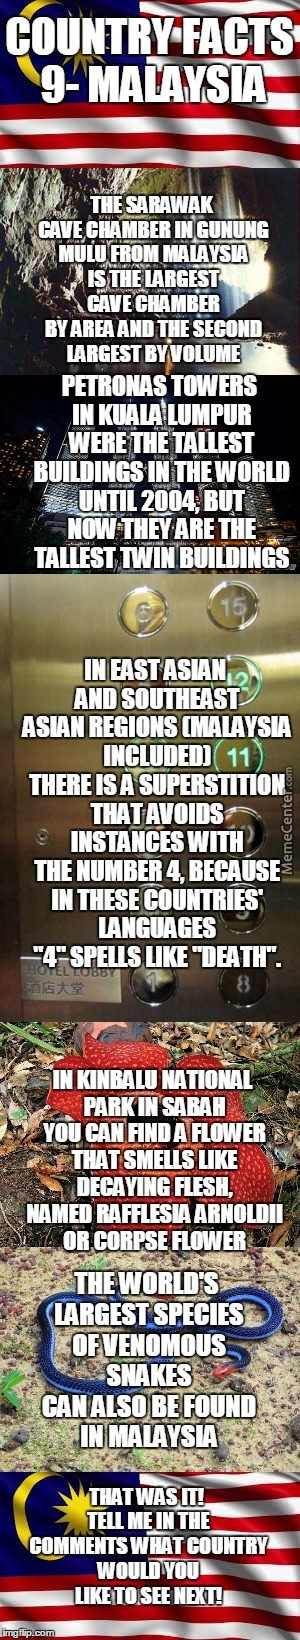 Country Facts #9- Malaysia